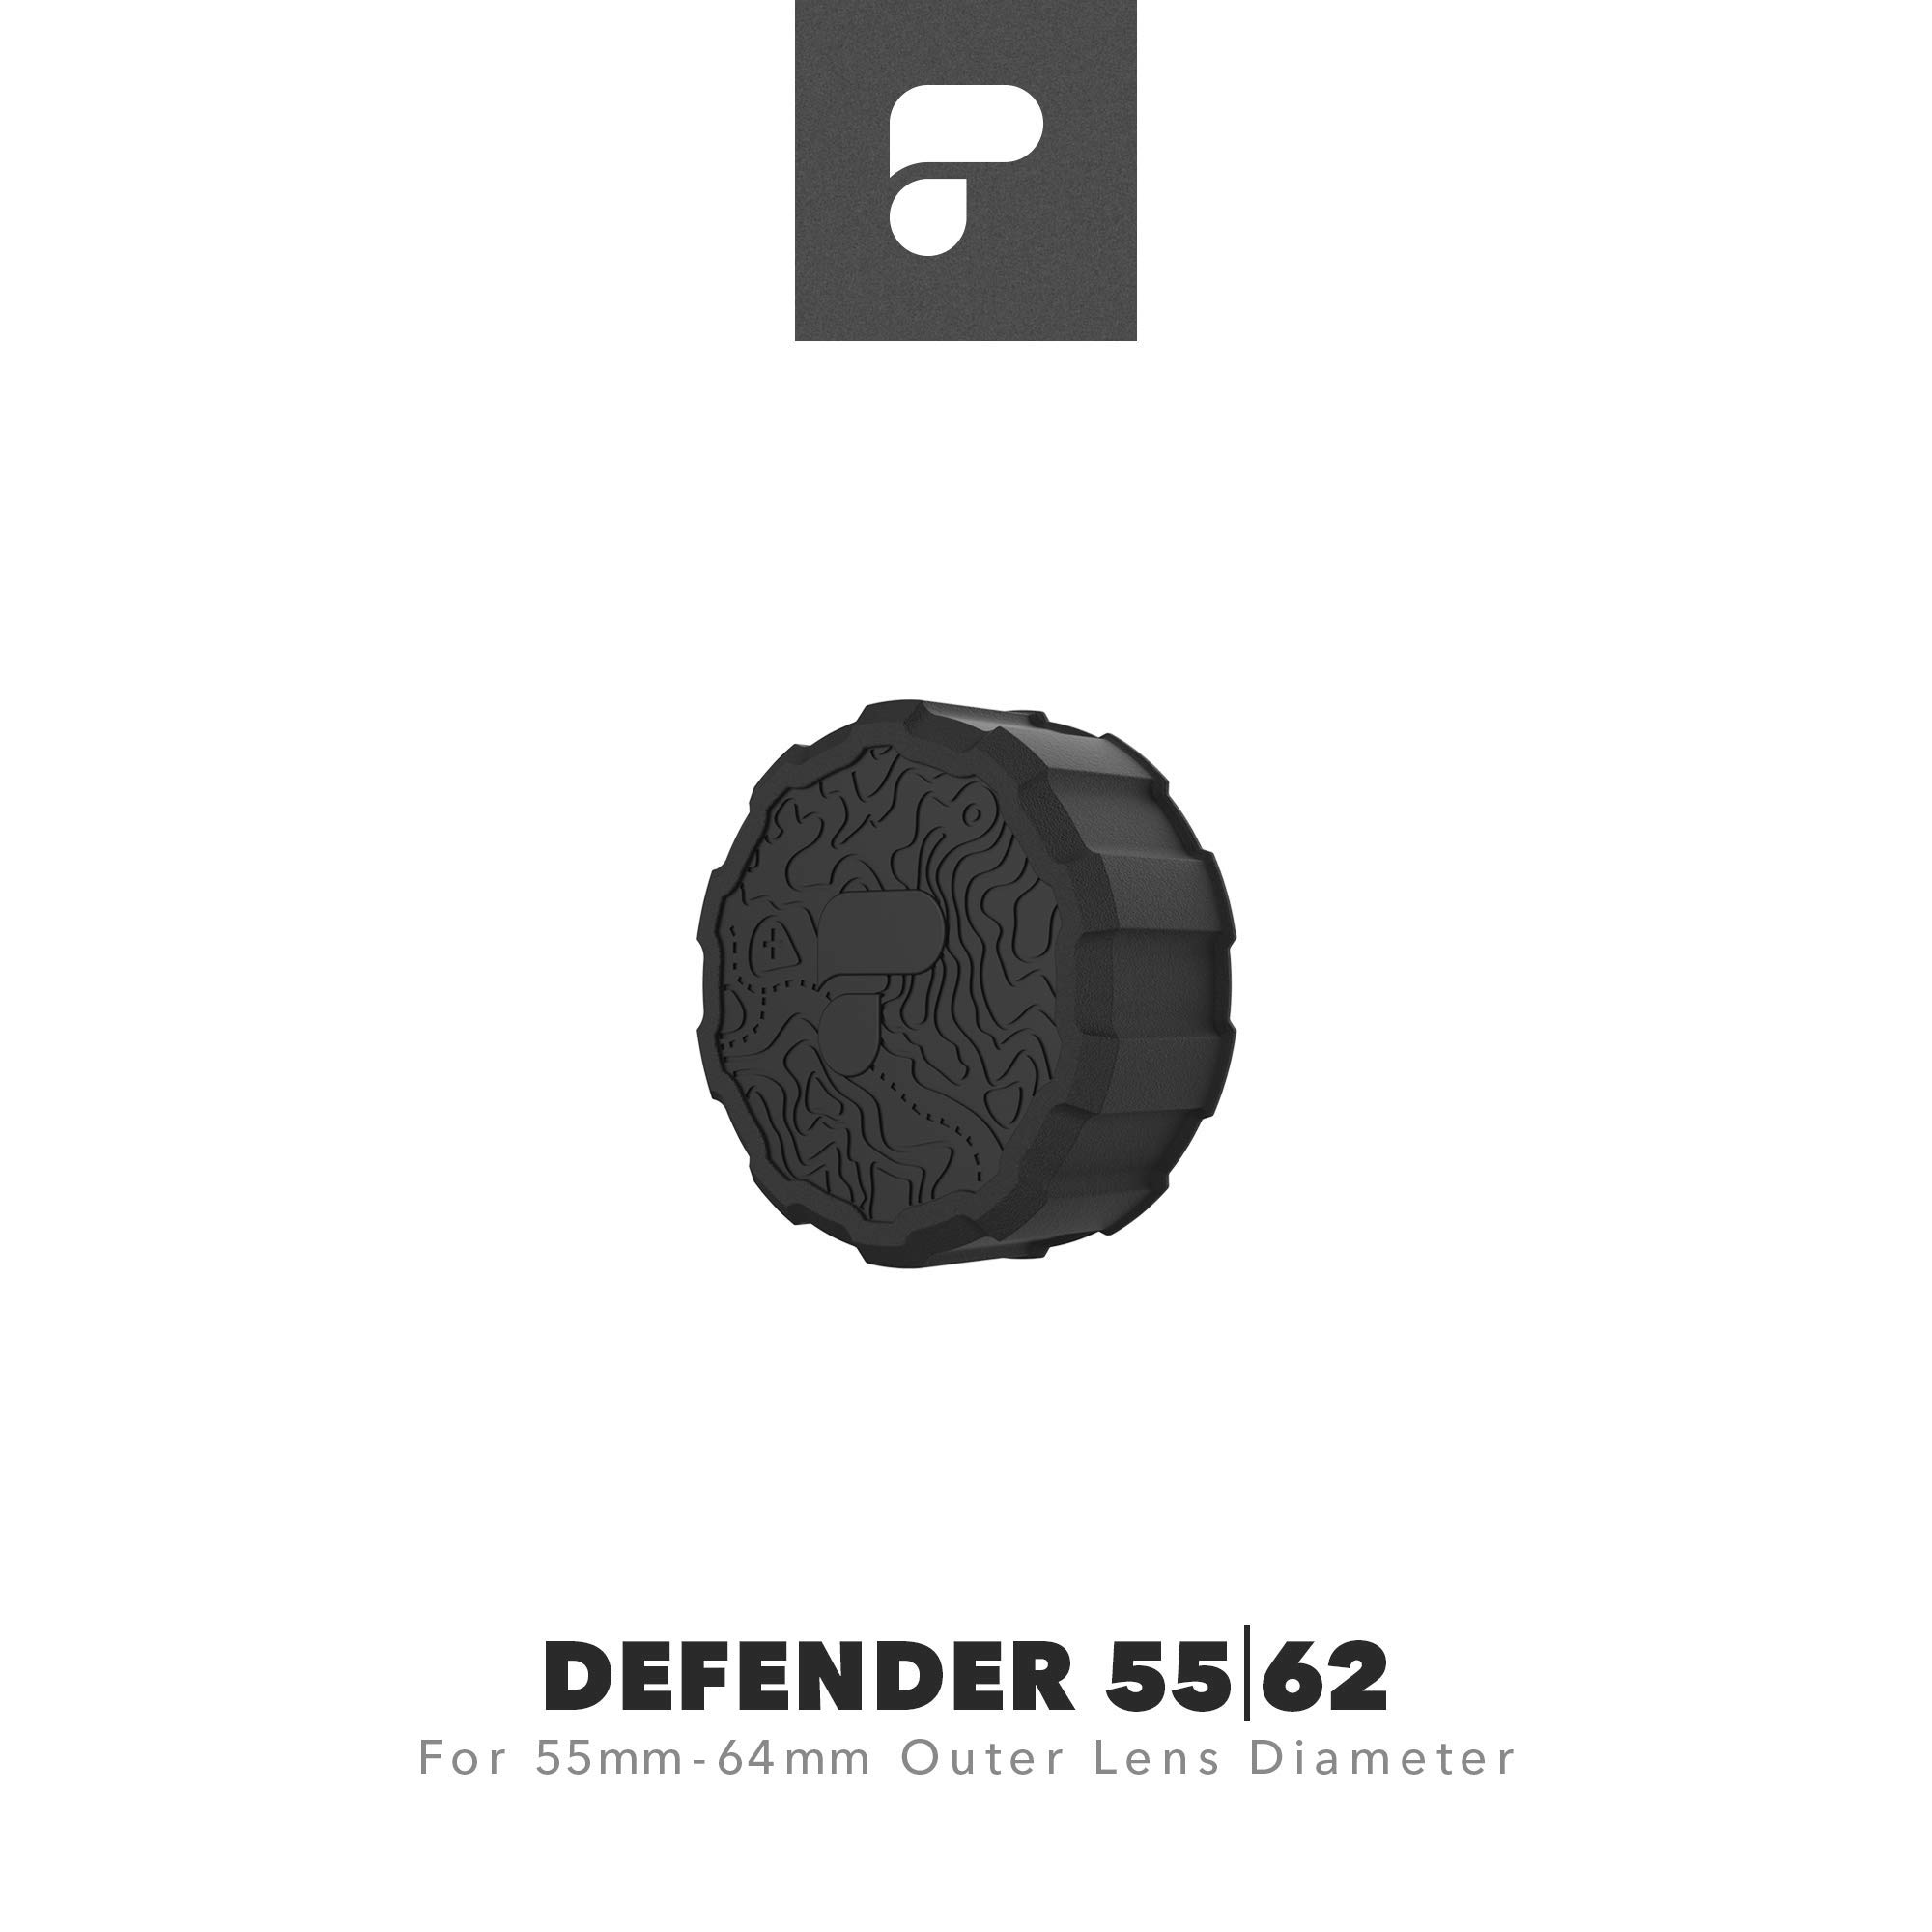 PolarPro Defender 55 | 62 Lens Cover (Fits Lenses with 55mm-64mm Outer Lens Diameter) by PolarPro